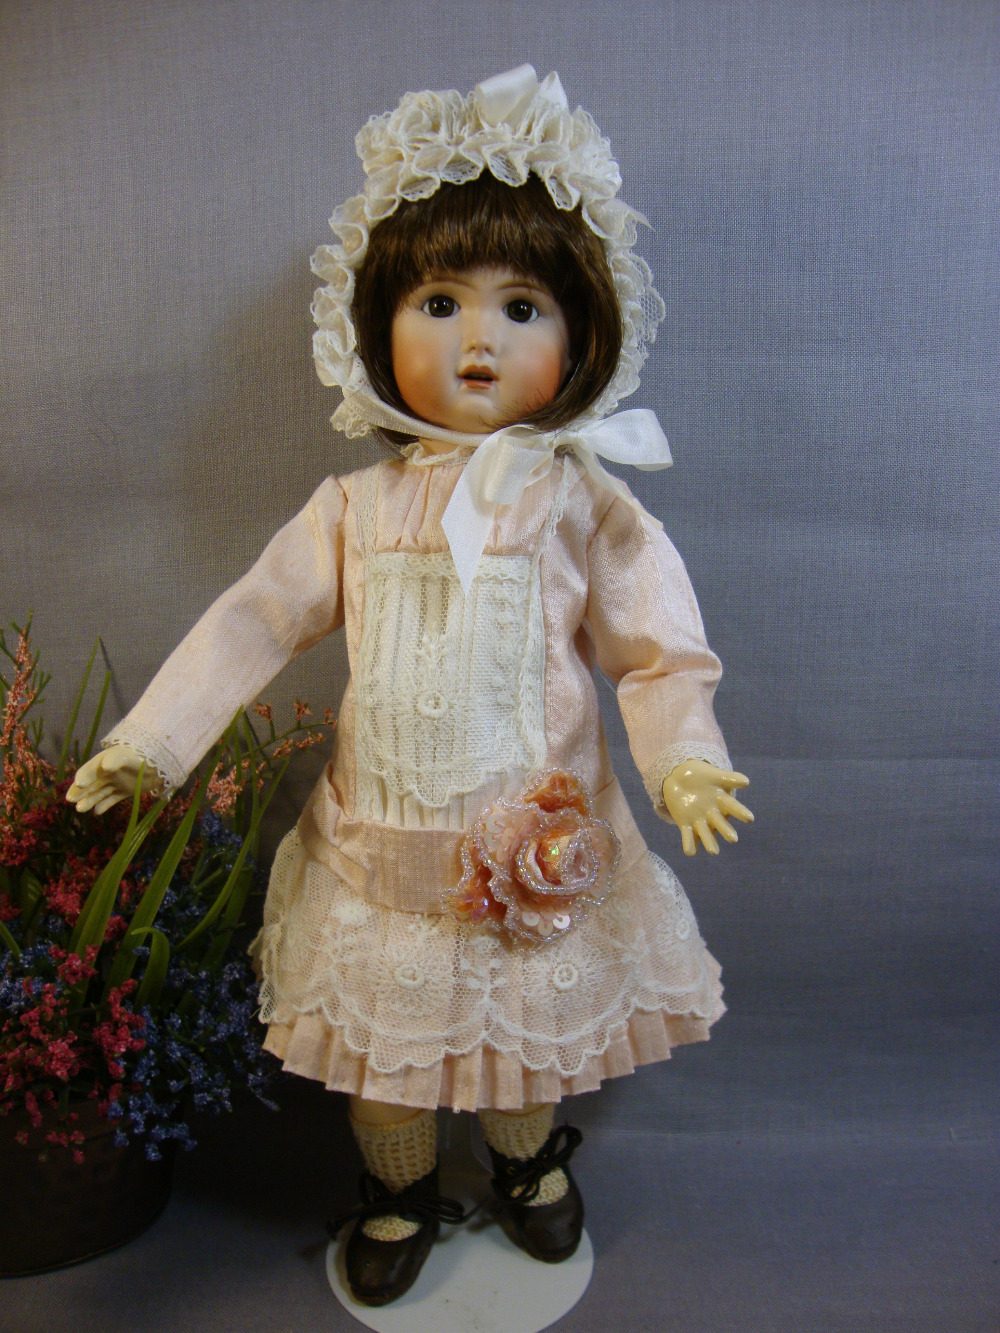 Bleuette Pattern 1890's French Dress and Bonnet